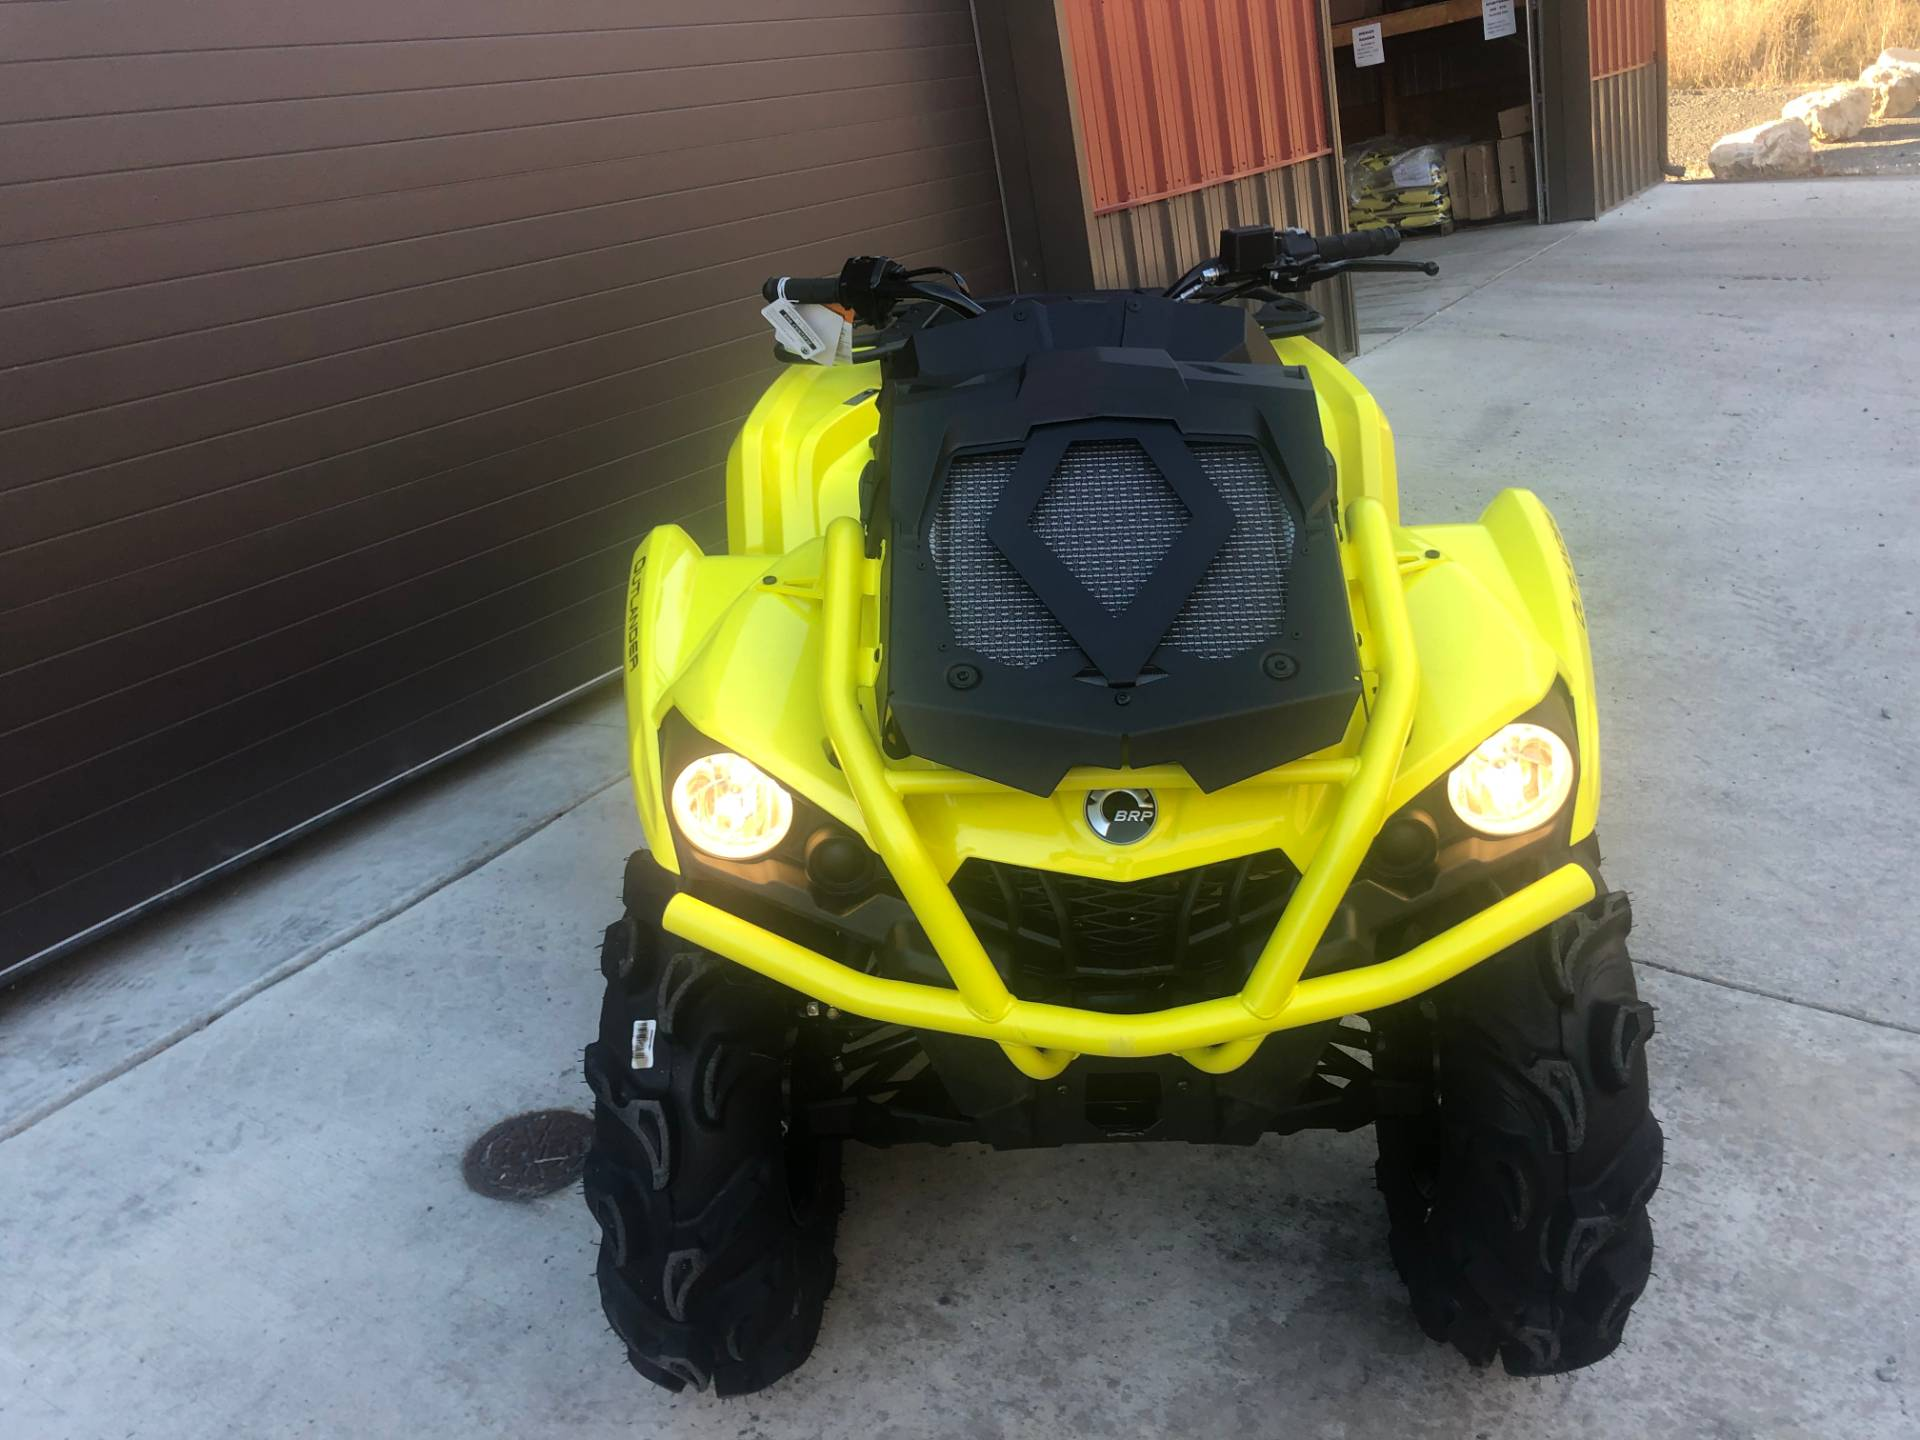 2019 Can-Am Outlander X mr 570 in Tyrone, Pennsylvania - Photo 3